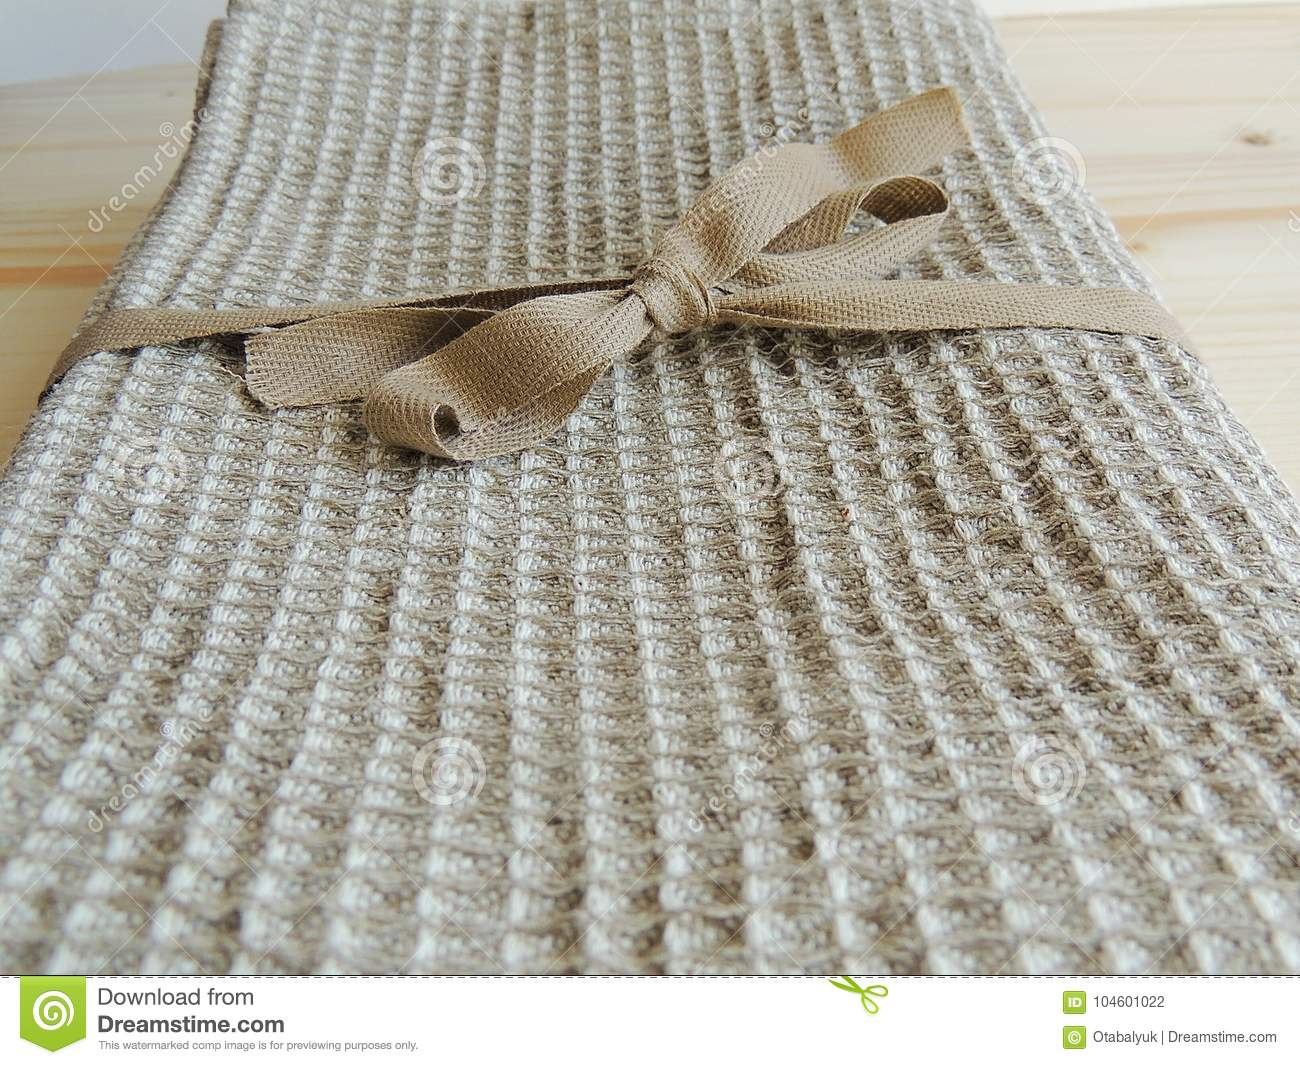 Handmade Natural Linen Bath Towel With Waffle Texture On Wooden